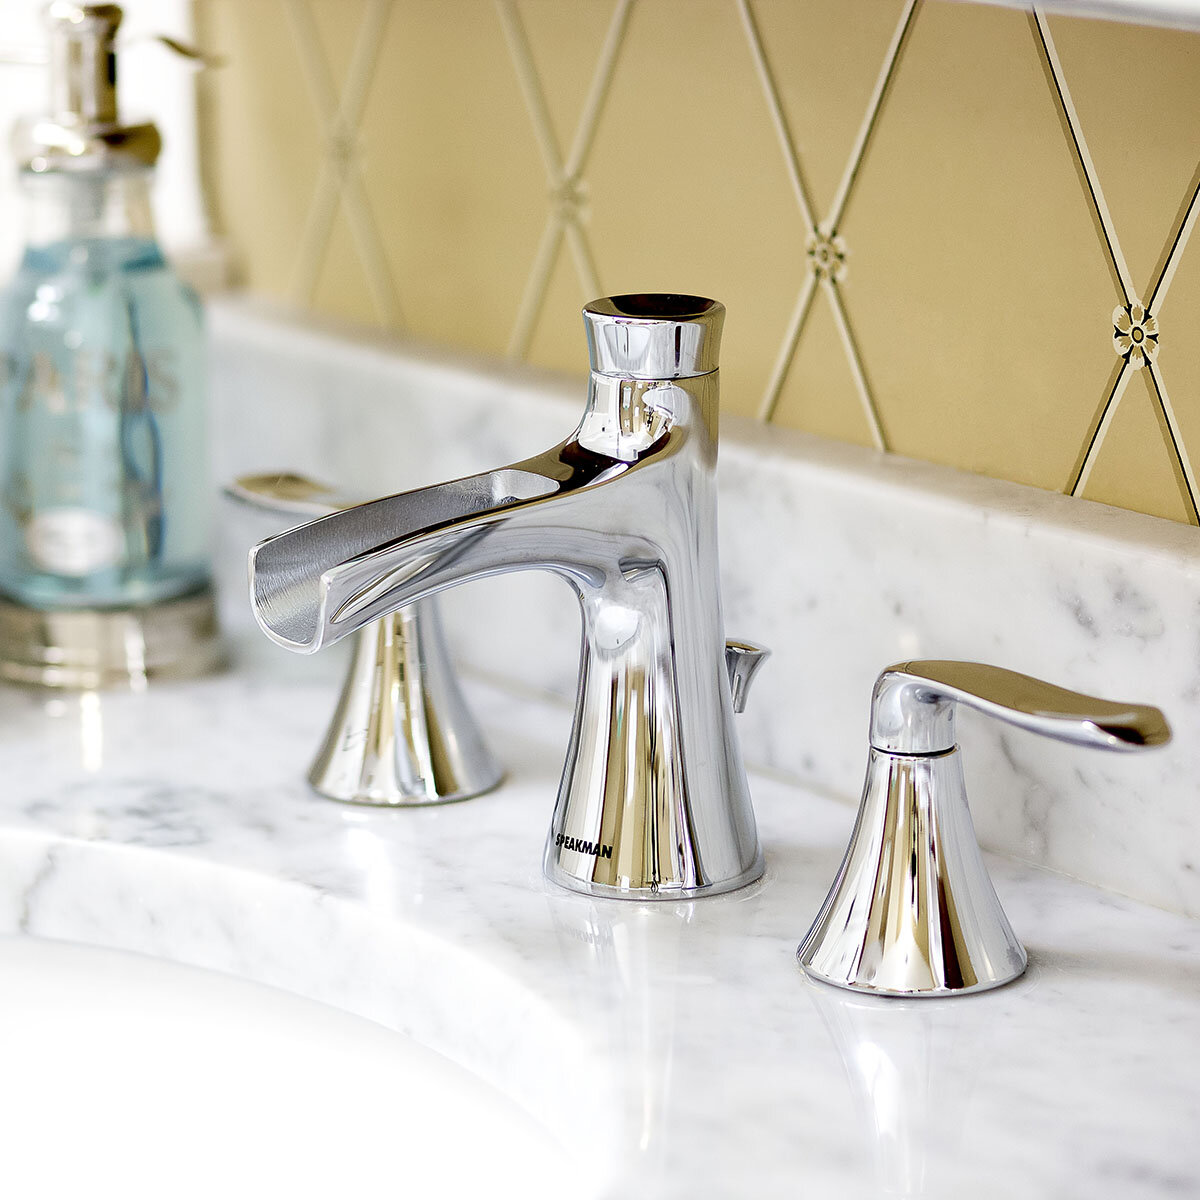 sb tiber faucets faucet widespread speakman